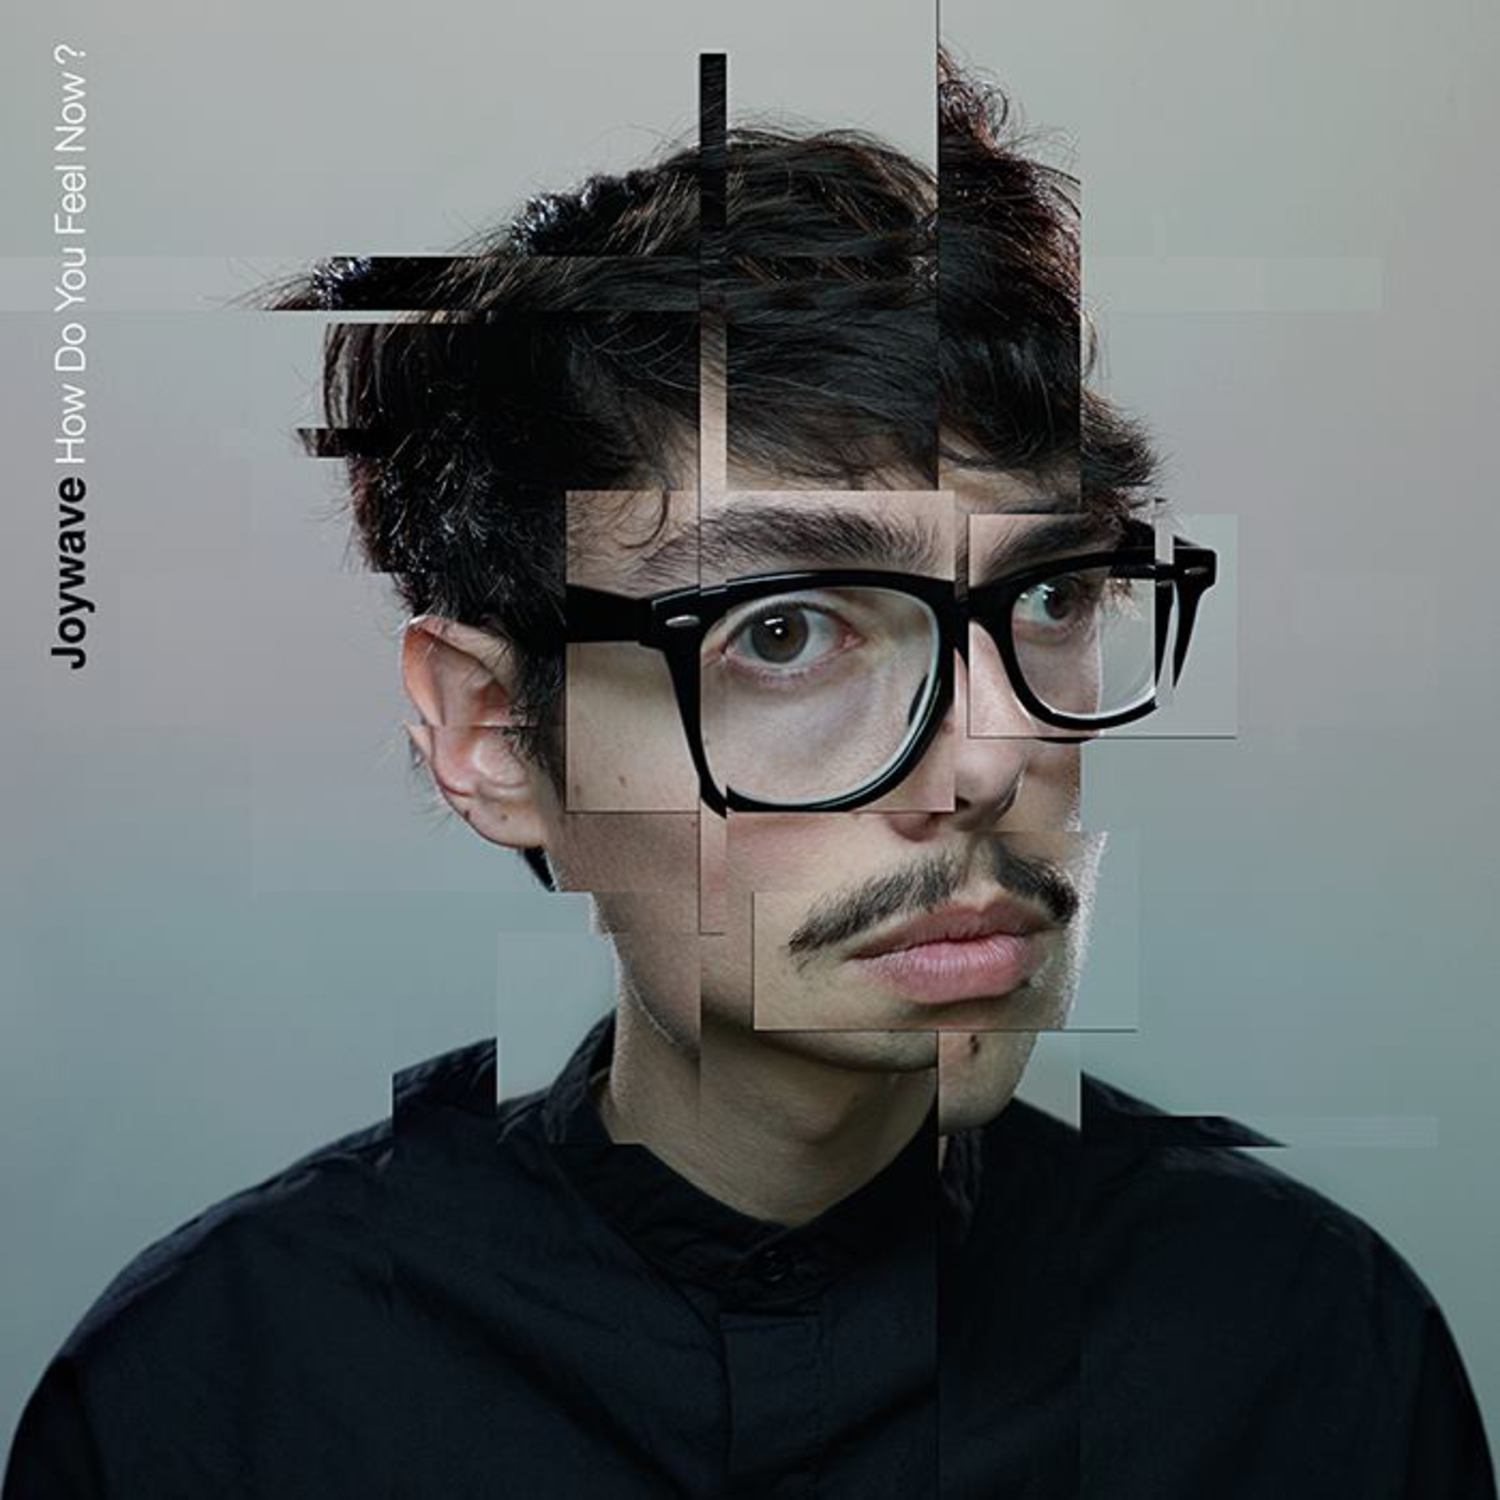 Joywave - How Do You Feel Now?